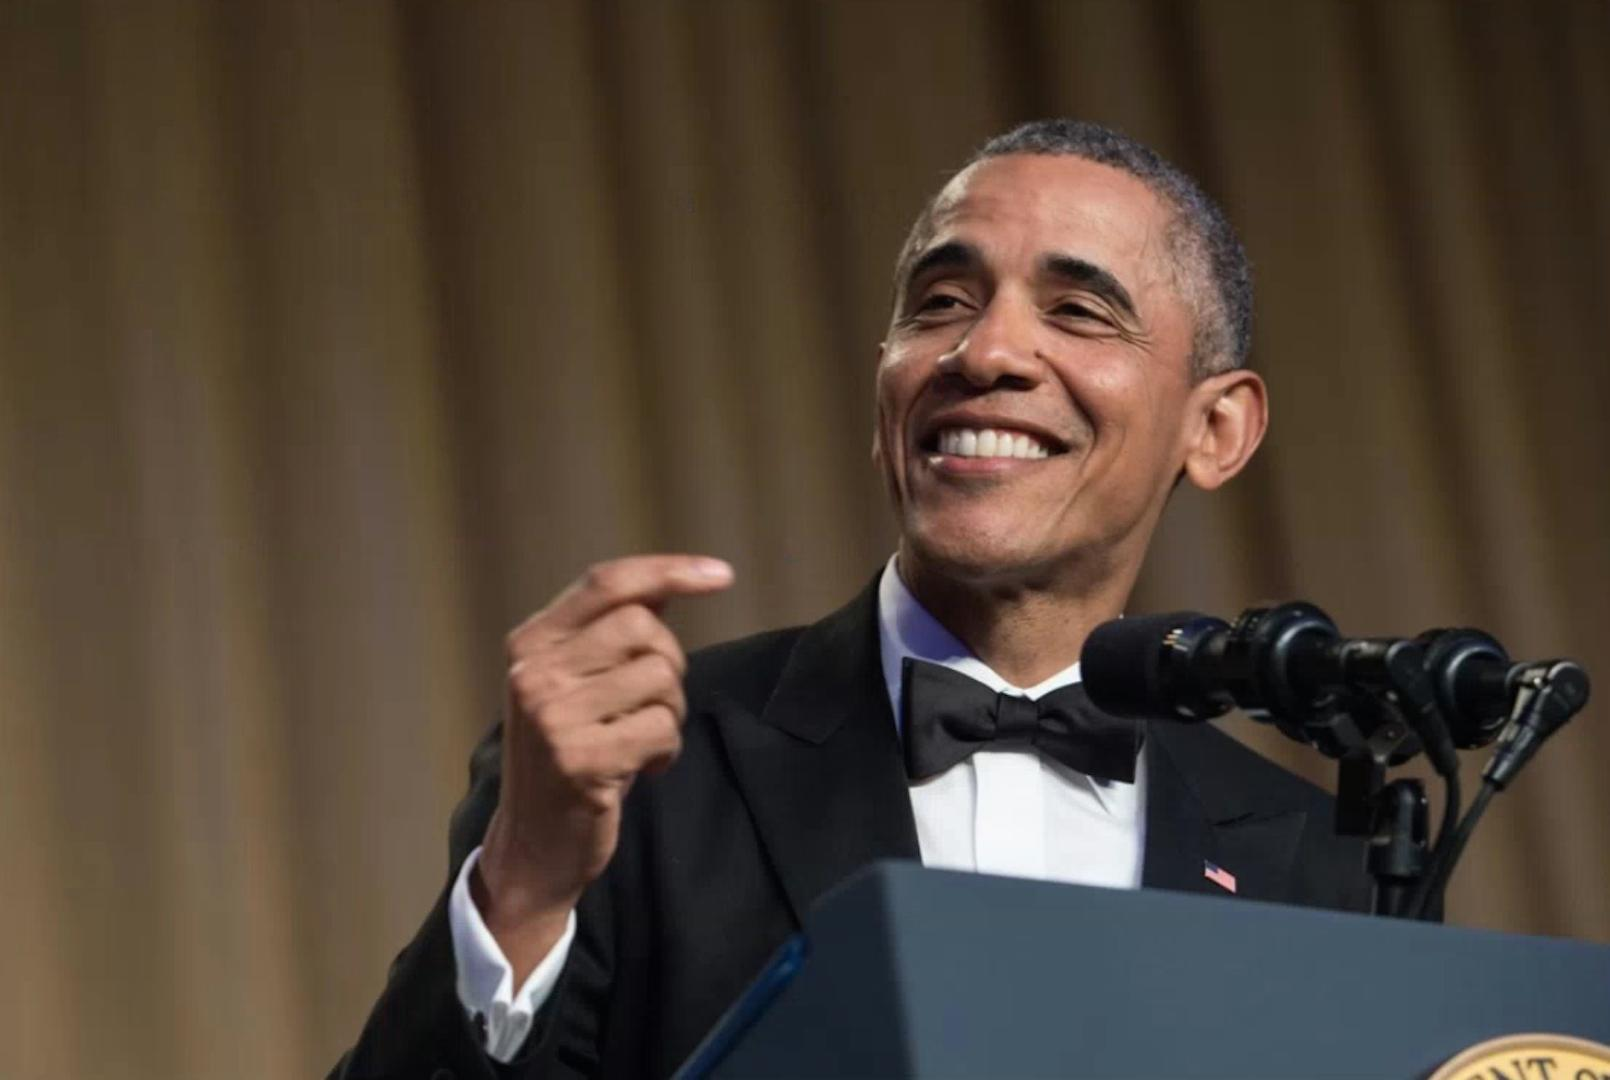 Obama's last correspondents' dinner speech, in 3 minutes